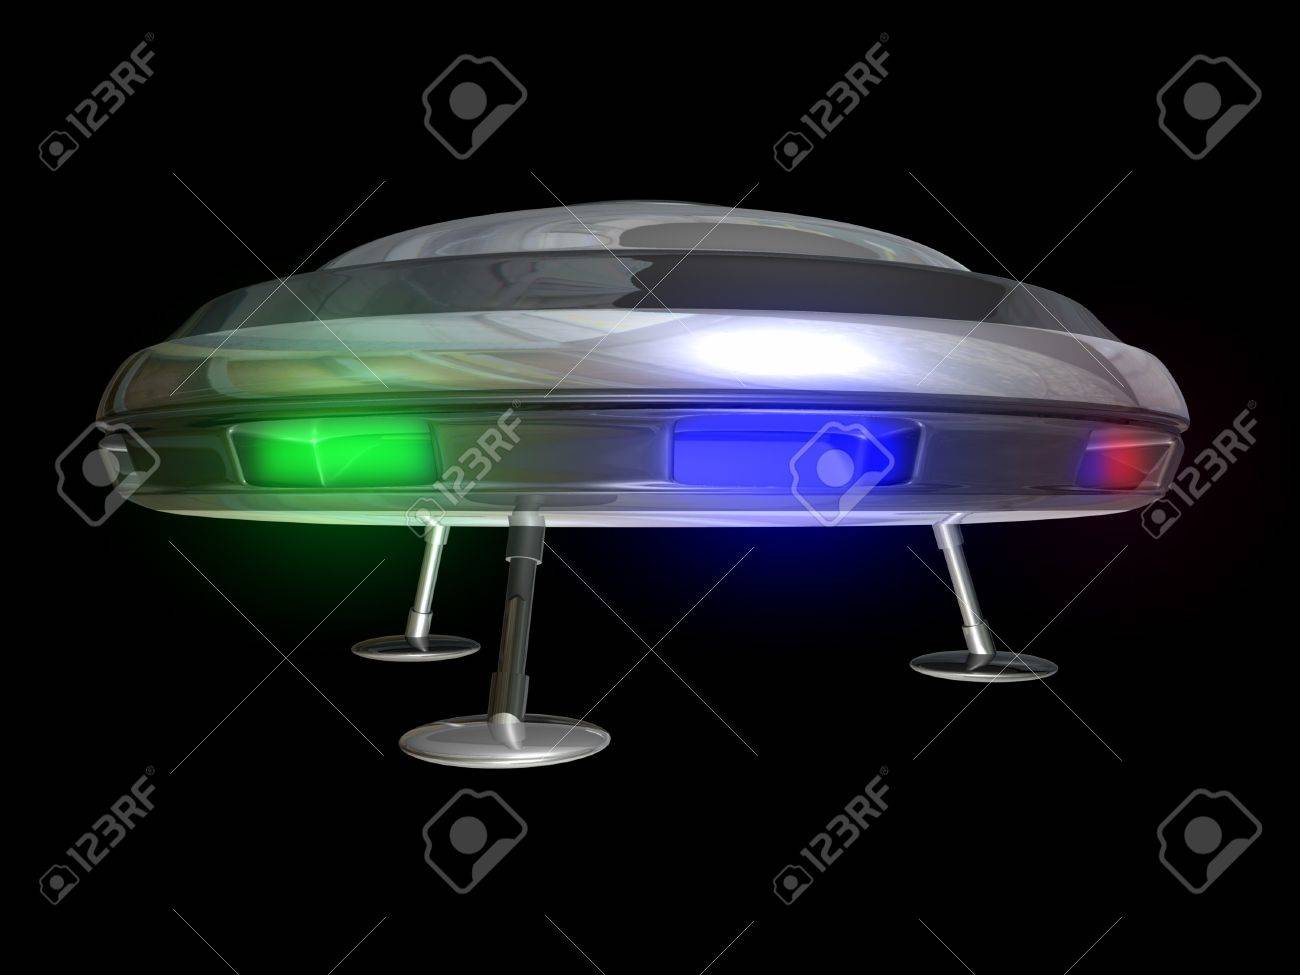 UFO On A Black Background 3D Illustration Stock Photo, Picture And ... for Ufo Black Background  173lyp